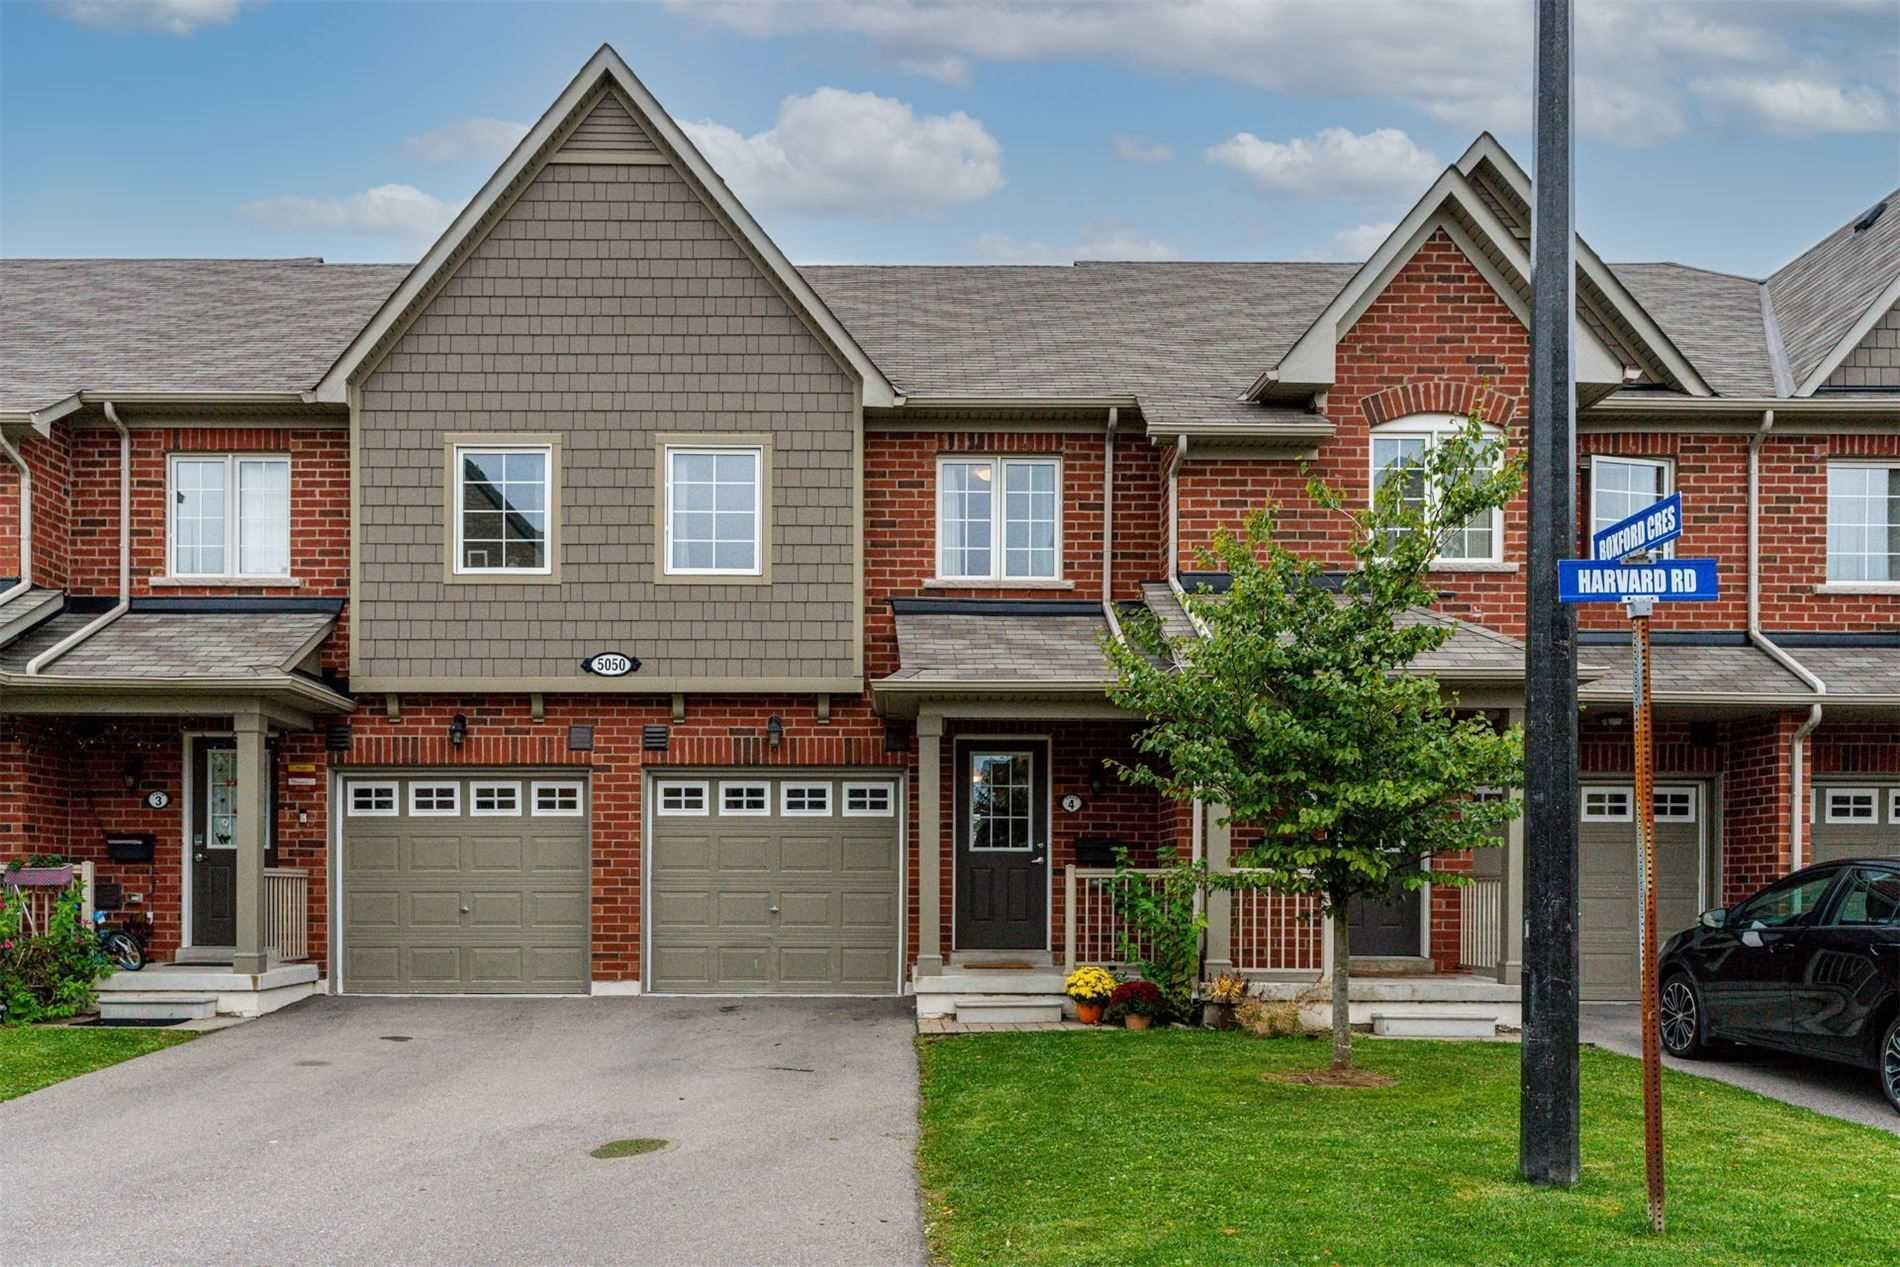 Main Photo: 4 5050 Harvard Road in Mississauga: Churchill Meadows Condo for lease : MLS®# W5399533